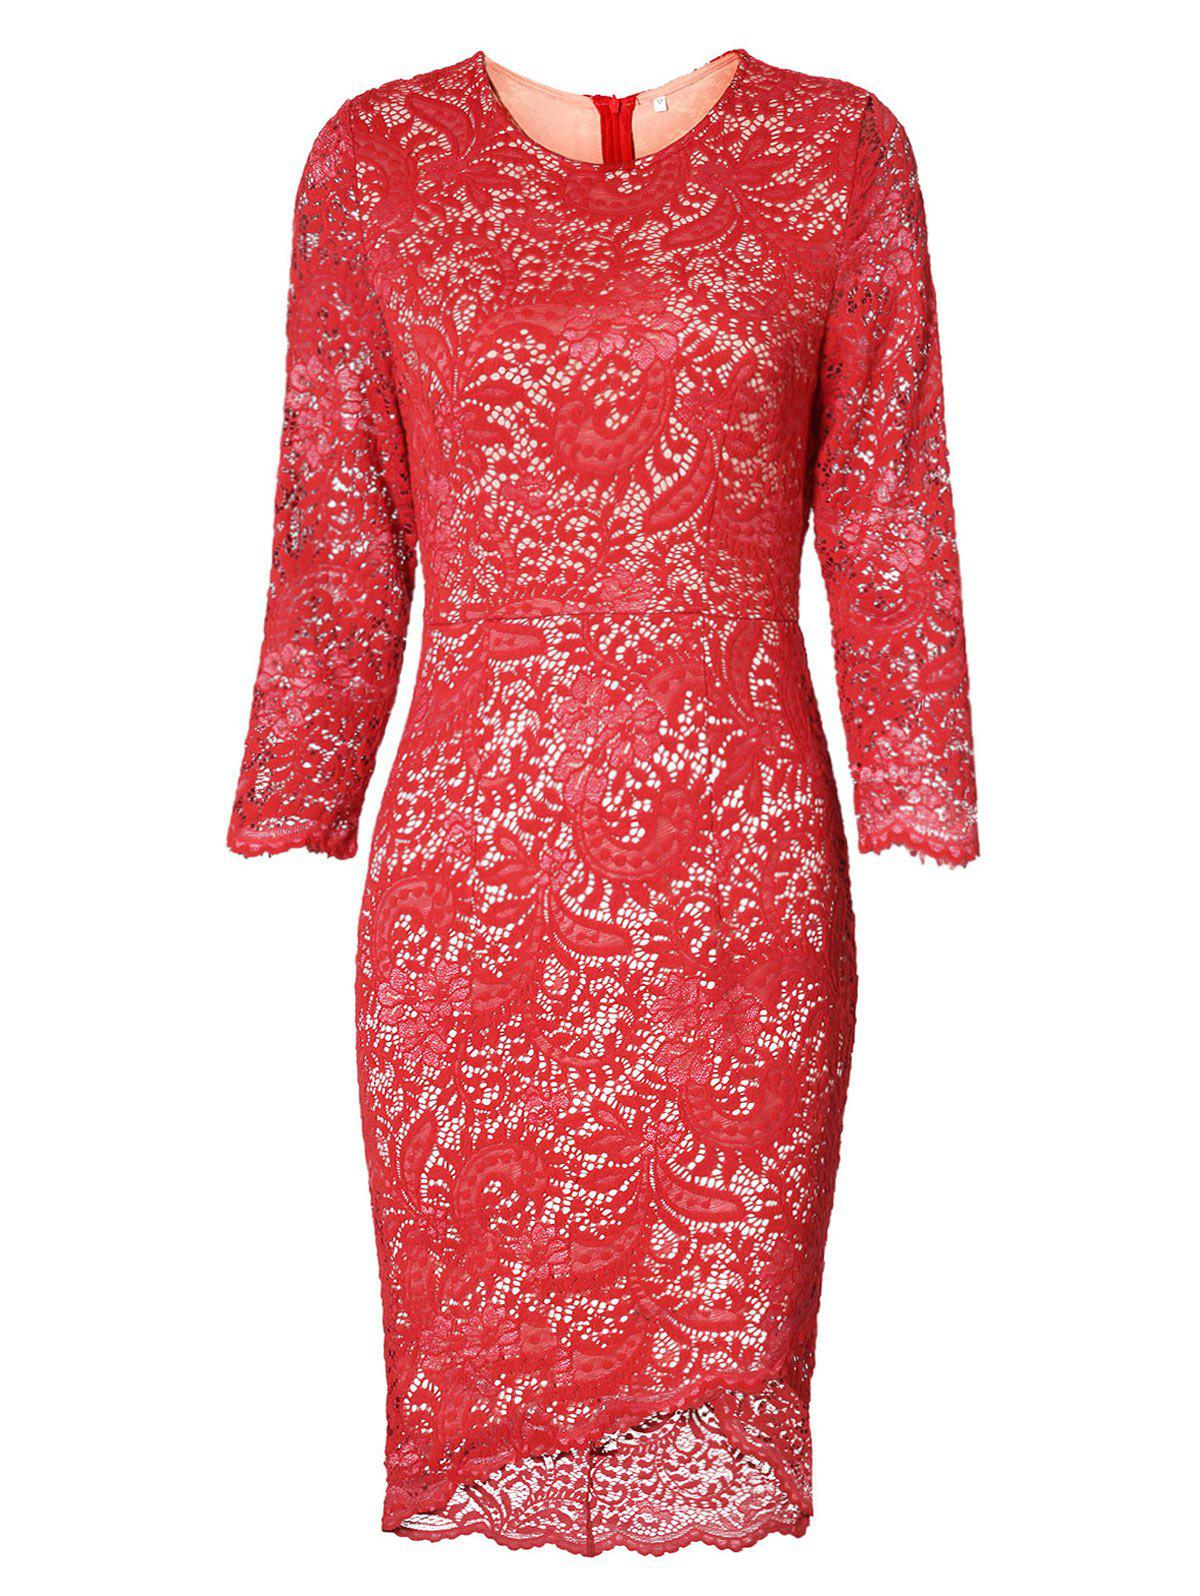 New High Low Bodycon Lace Dress